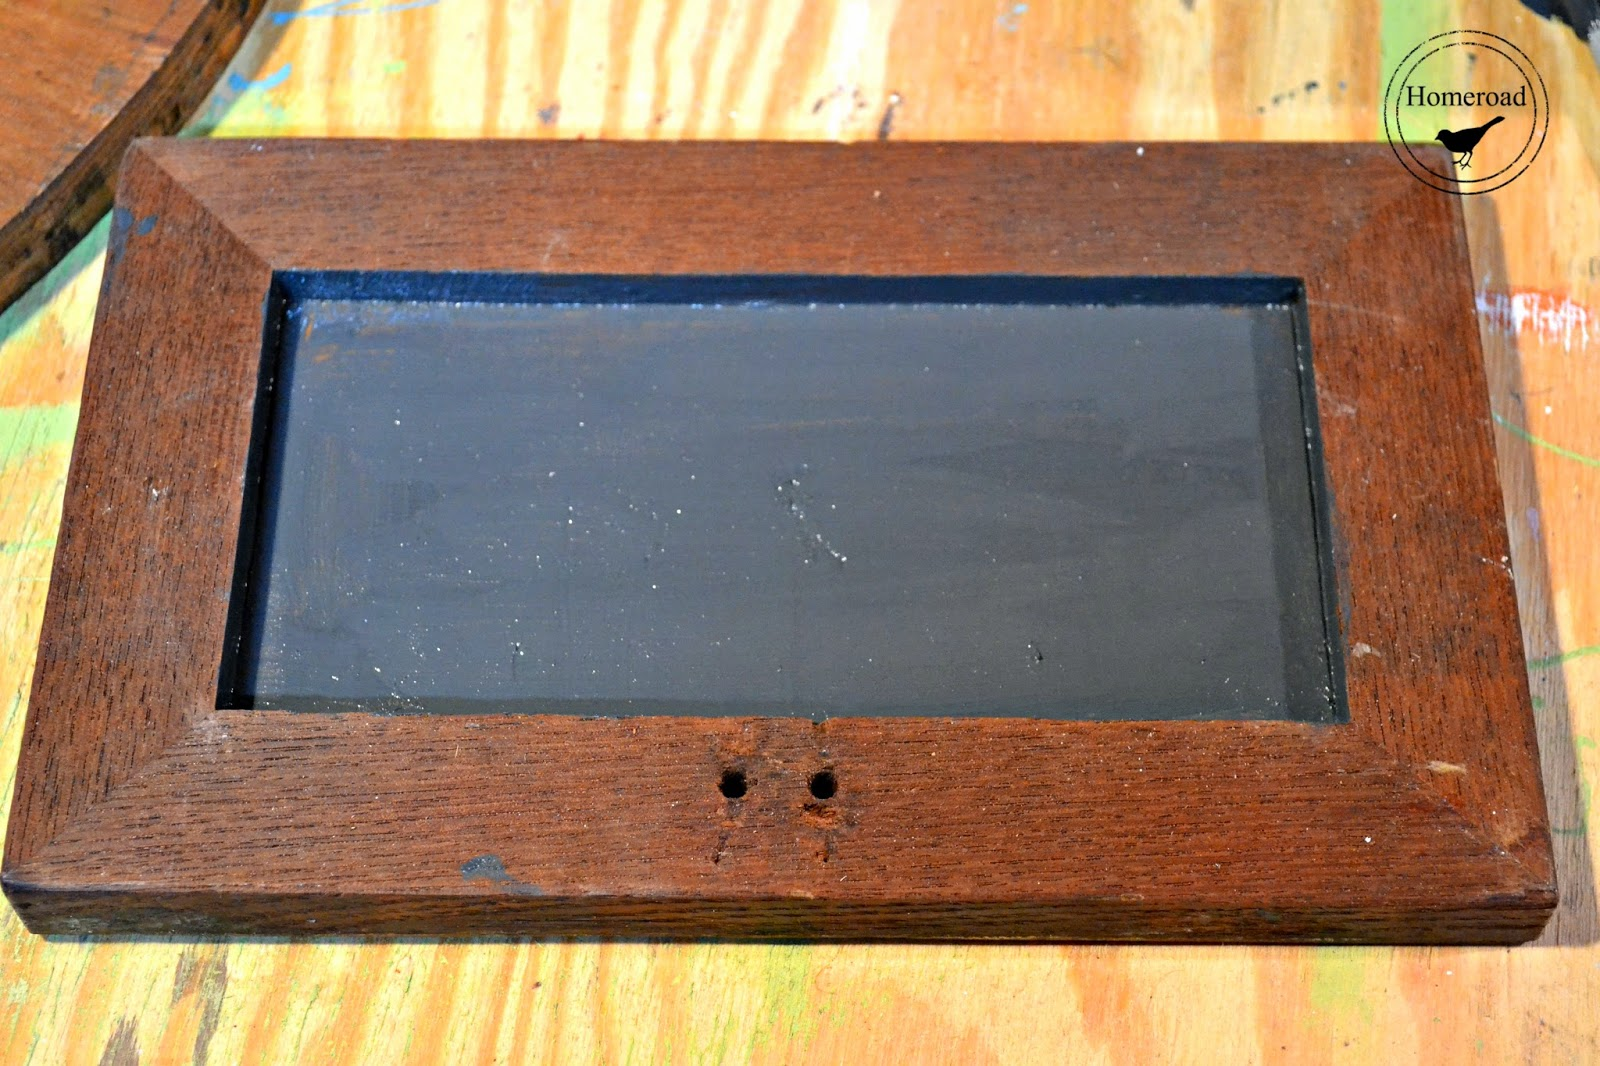 repurposed pedestal chalkboard www.homeroad.net